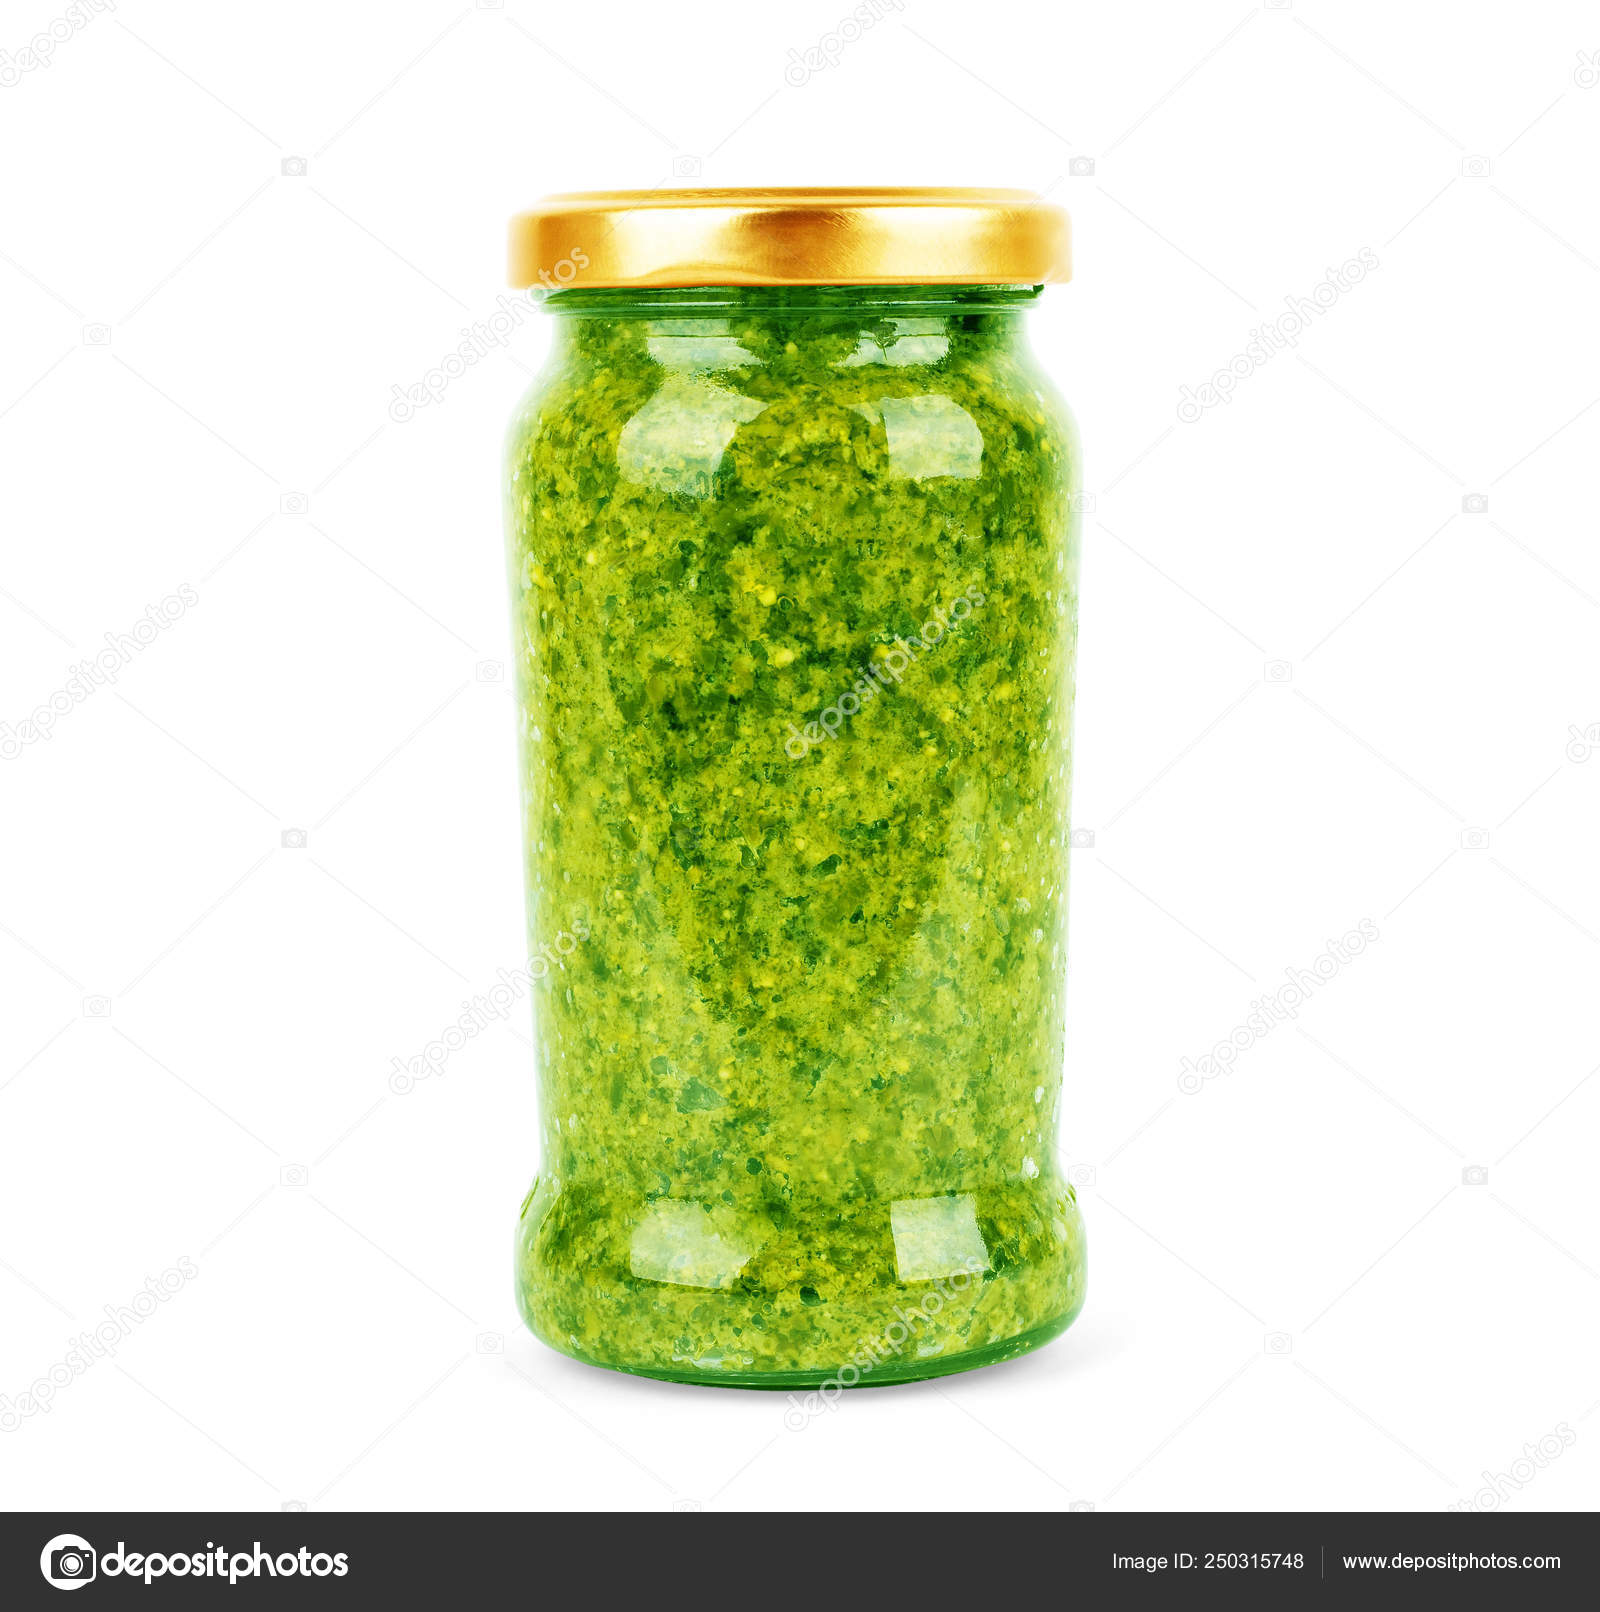 Homemade Basil Pesto Sauce In Glass Jar On White Background Stock Photo Image By C Vadarshop 250315748